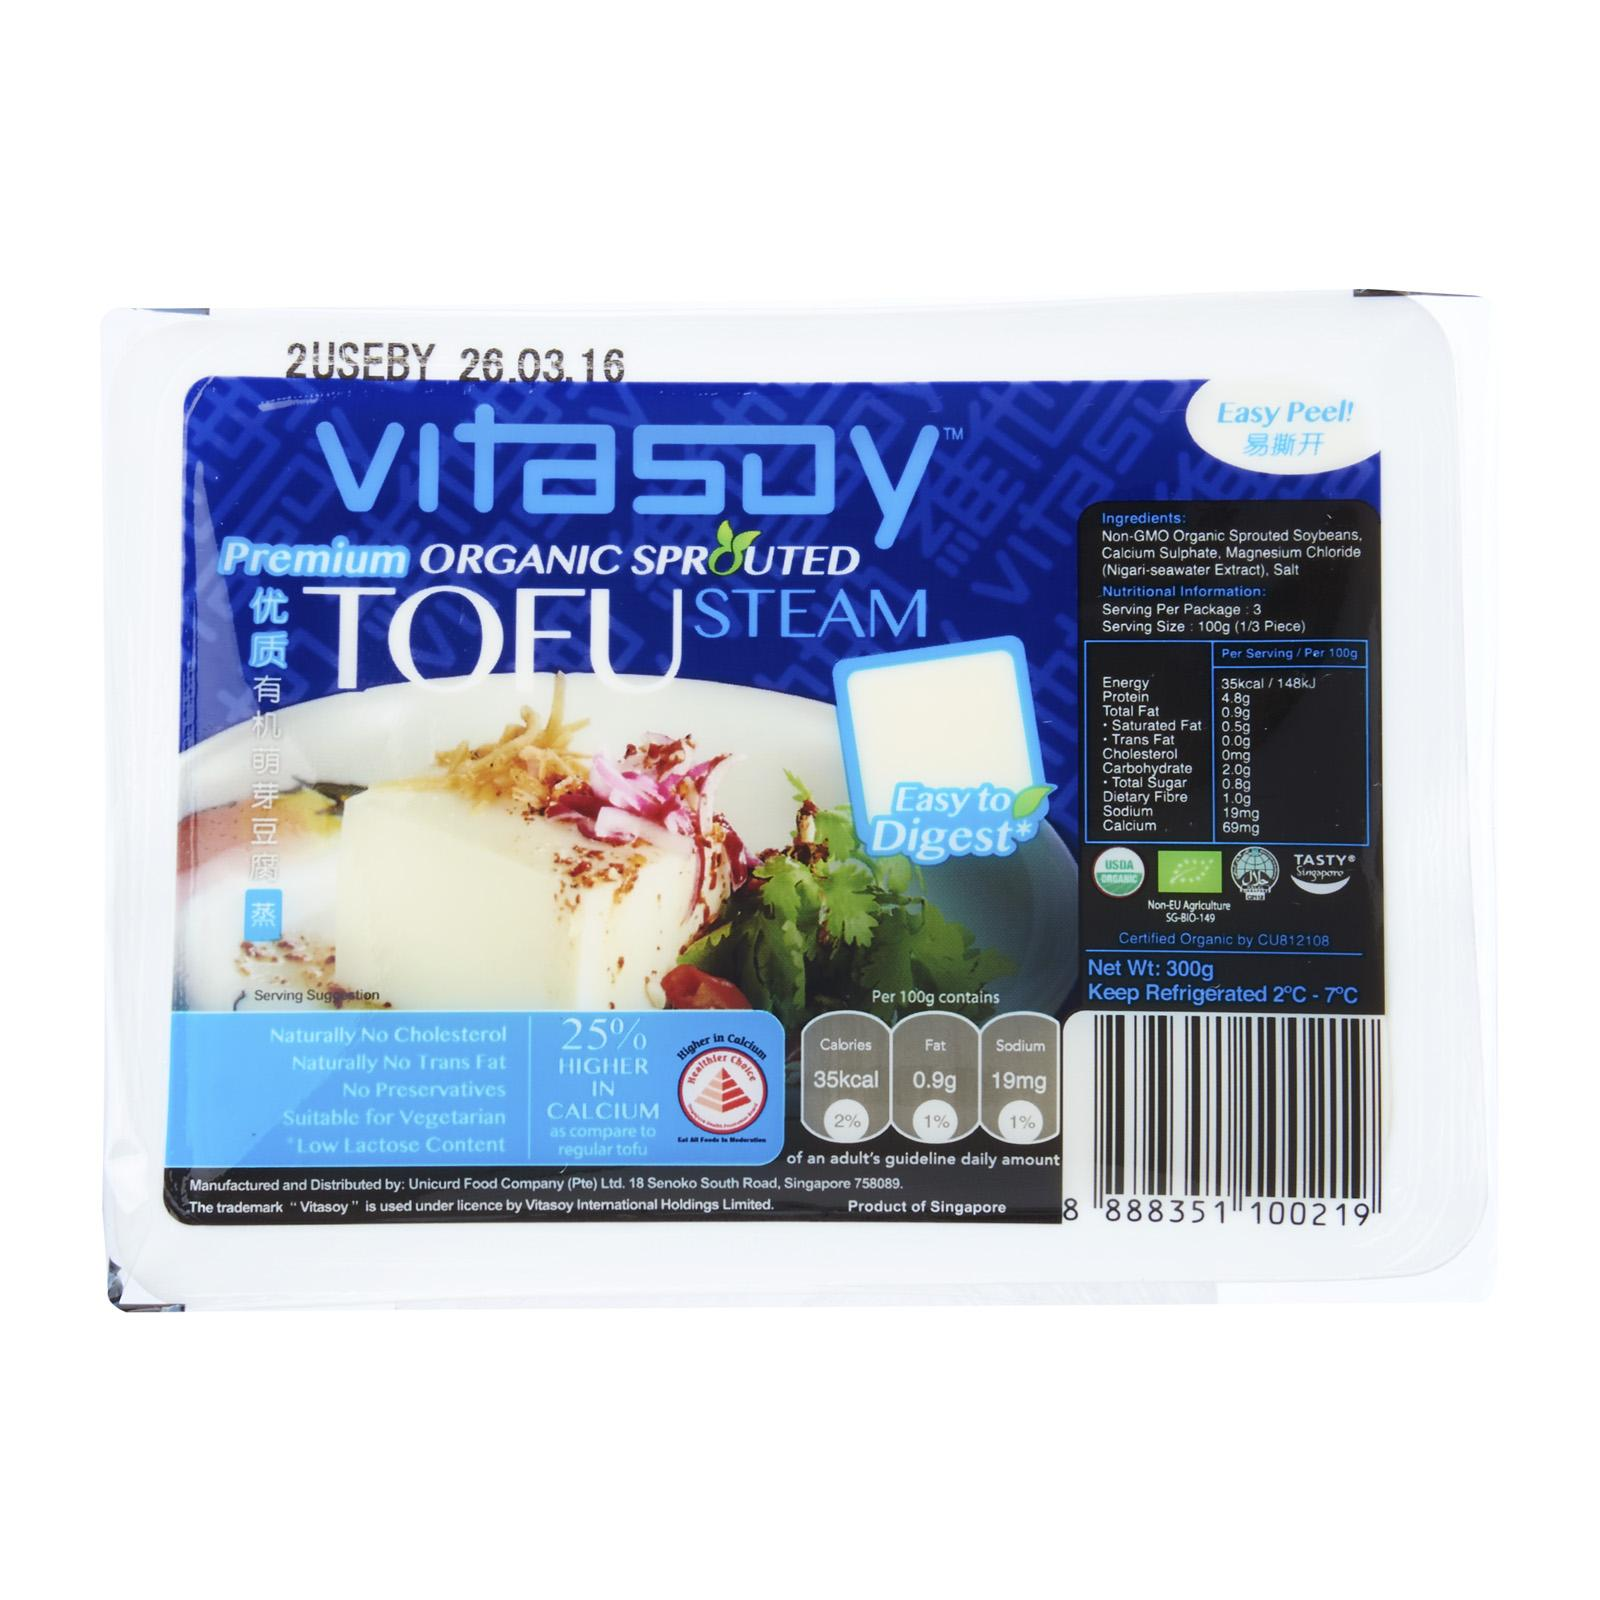 Vitasoy Premium Organic Sprouted Tofu - Steam By Redmart.